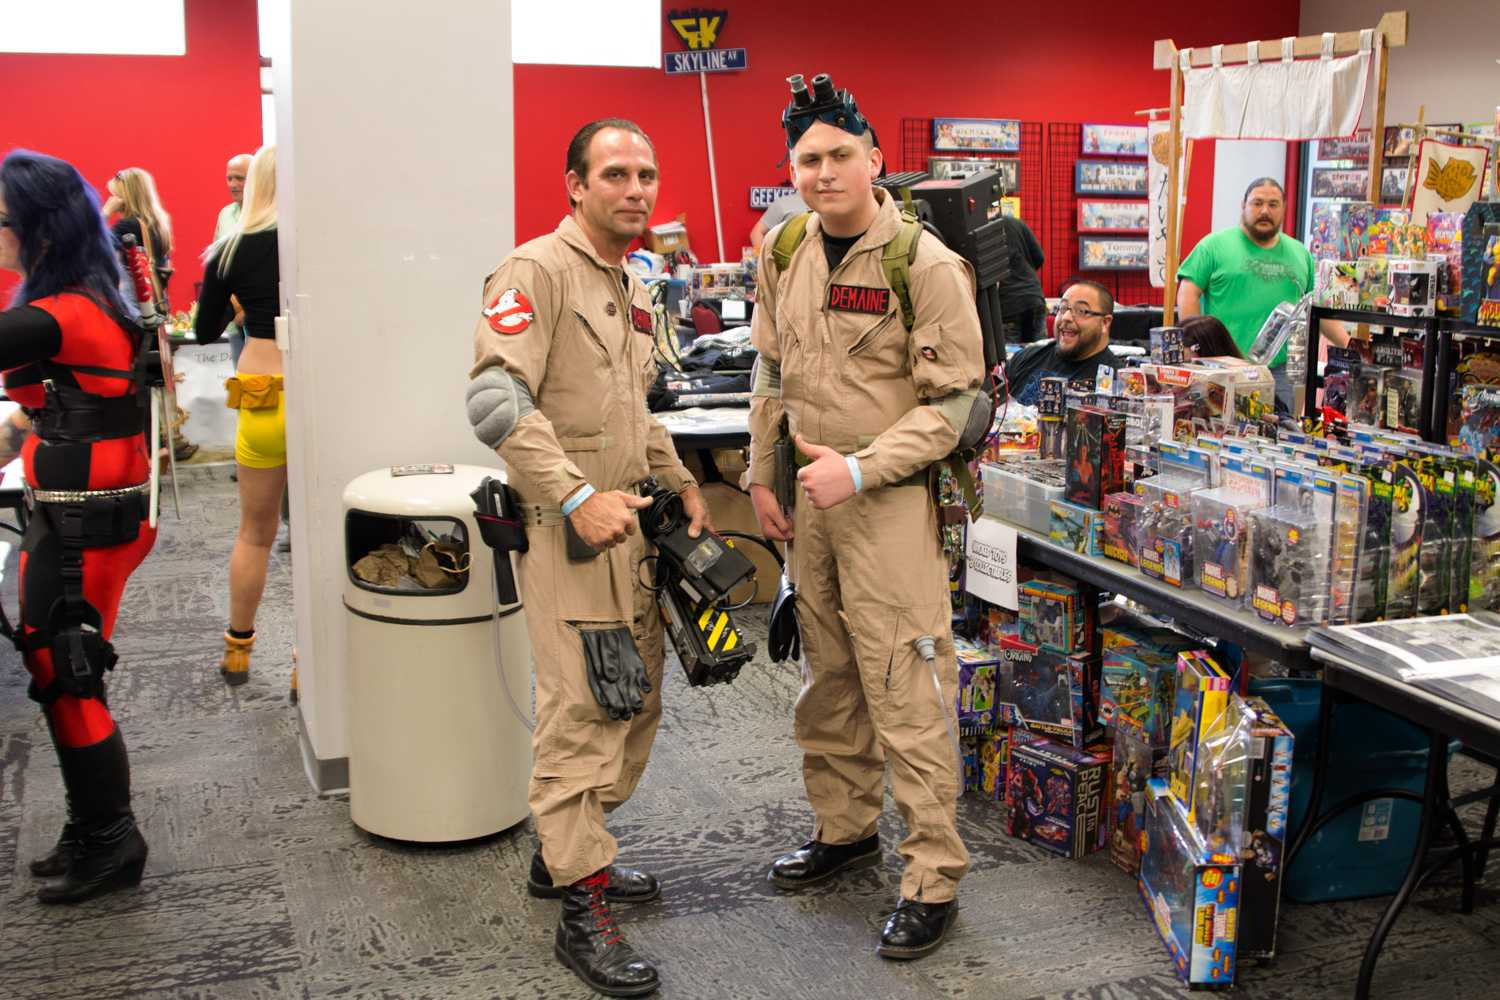 Mike DeMaine (left) and Vincent DeMaine (right) dressed as proton-pack slinging Ghostbusters from the movie Ghostbusters.